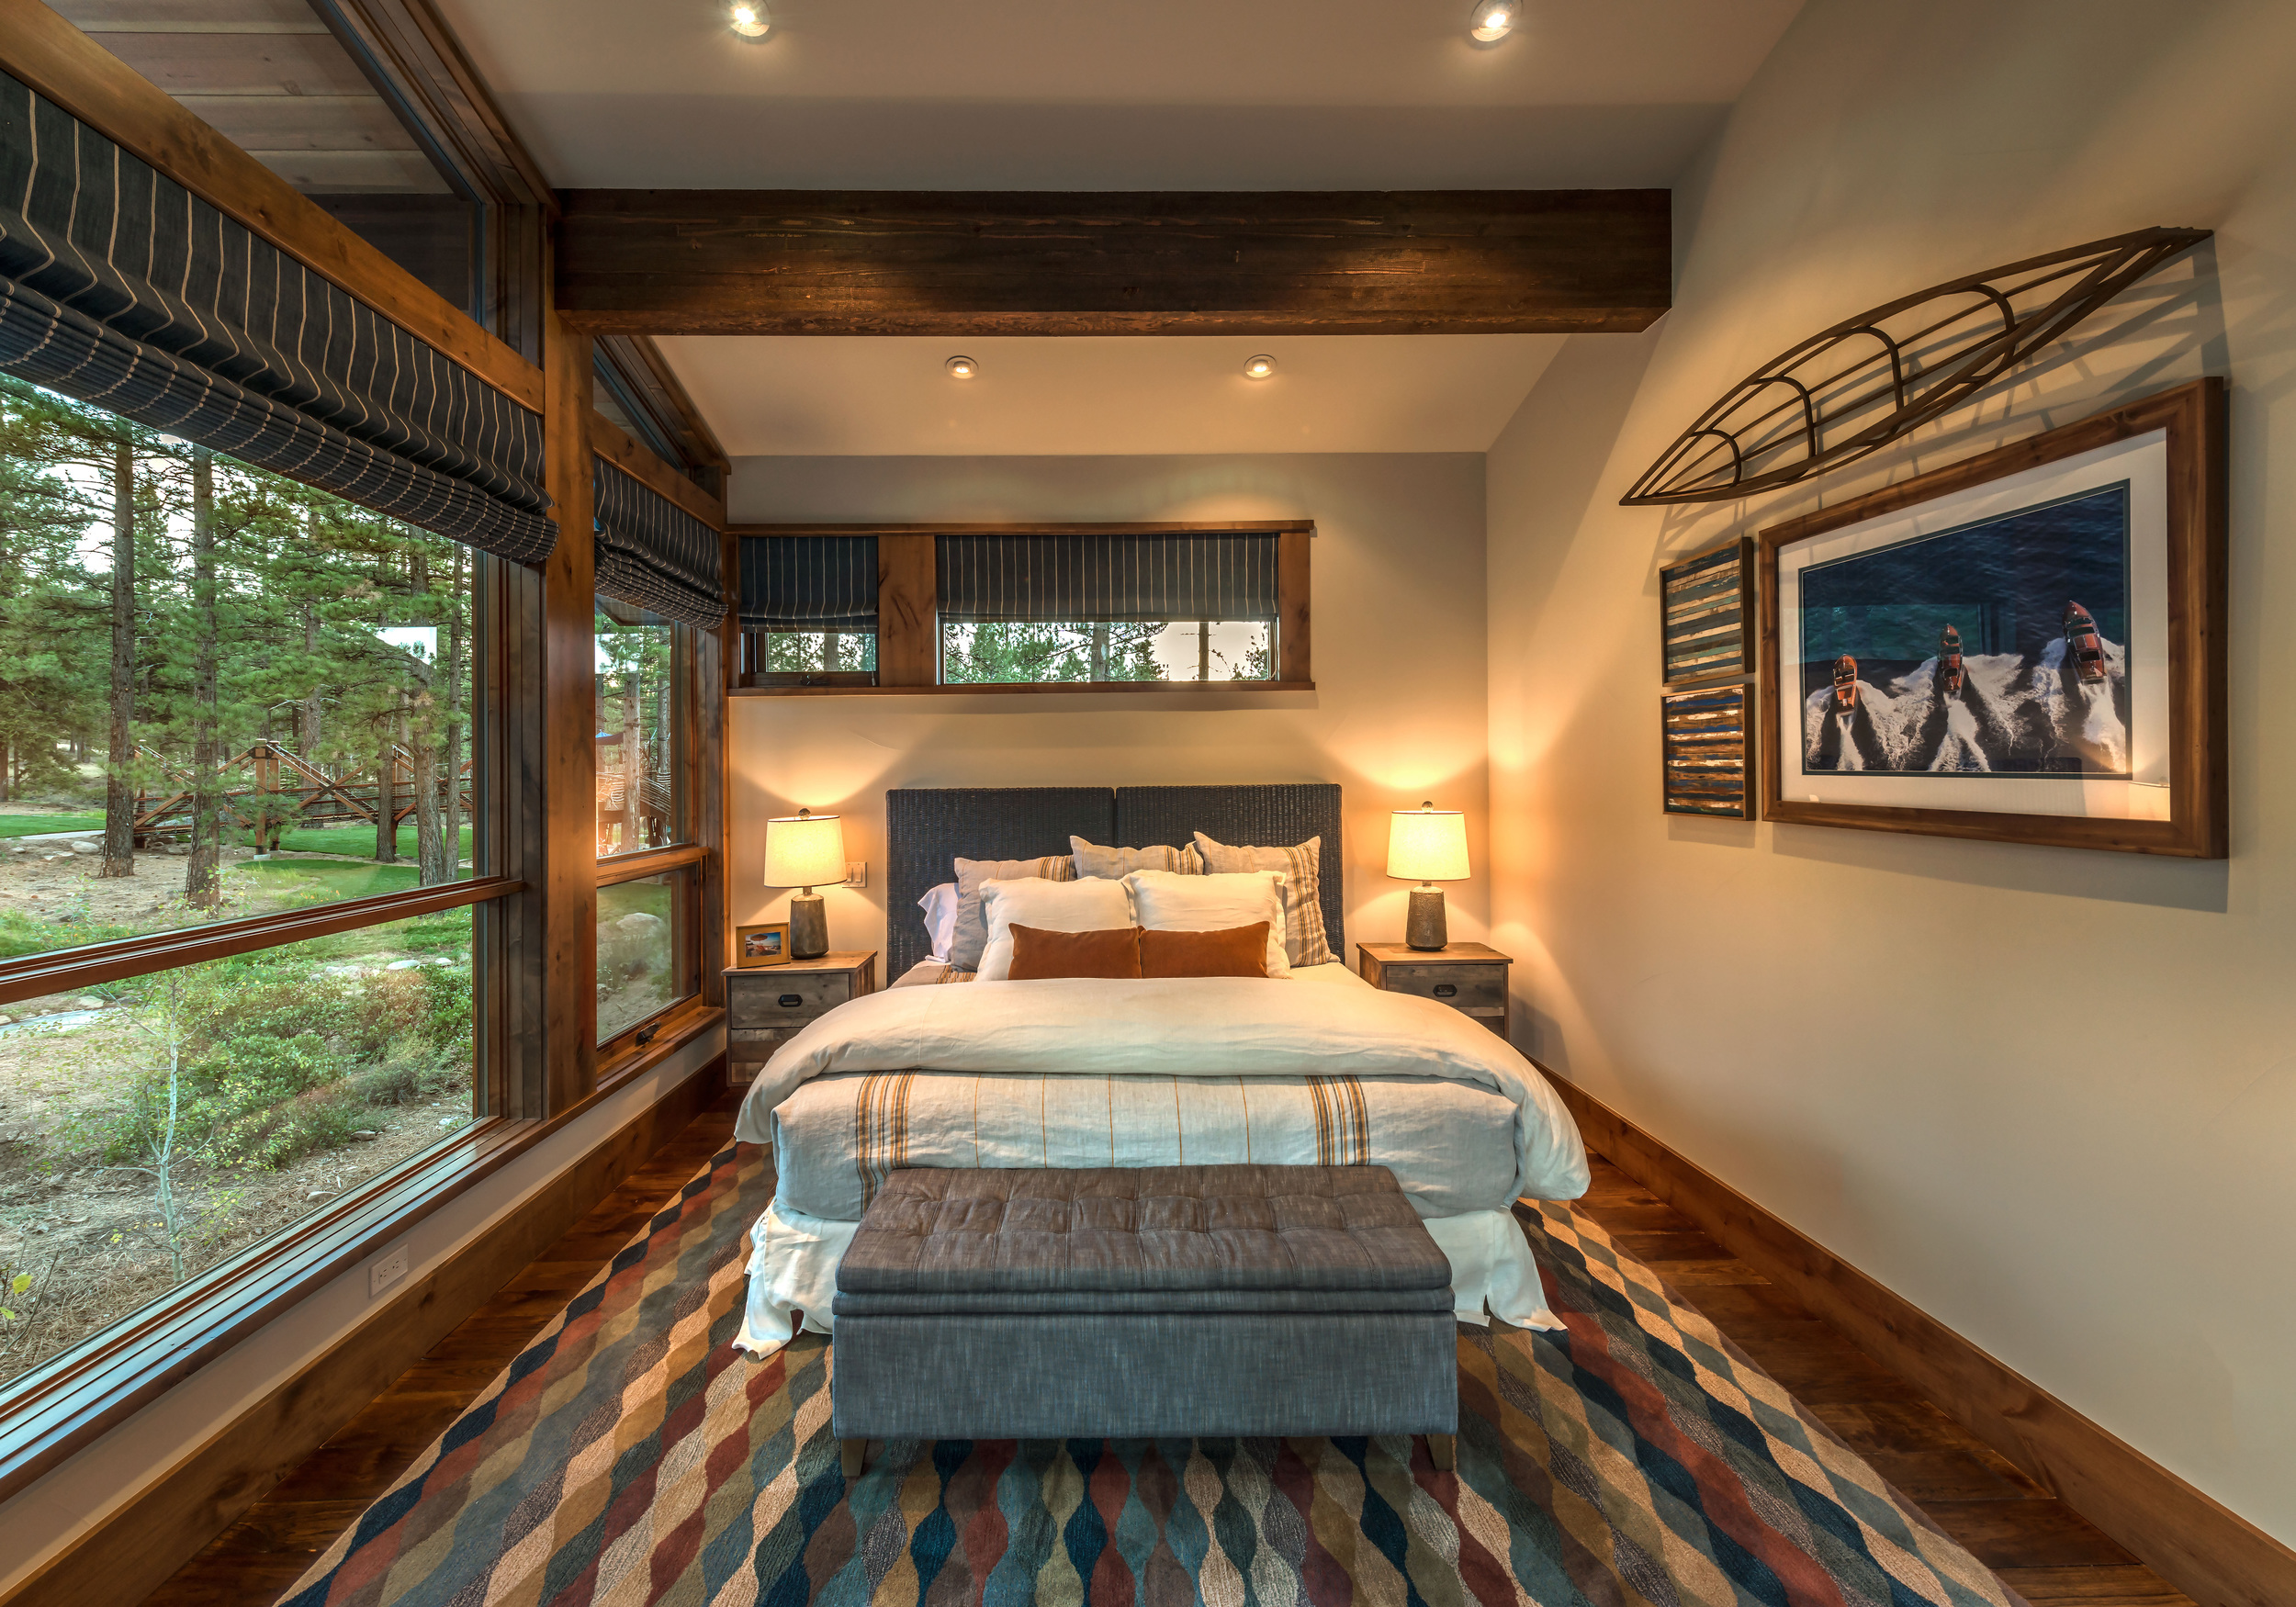 Contractor: Jim Morrison Construction    Interior Finishes + Furnishings: WaltonAE  Photography: Vance Fox Square Footage: 4,242 sf bedrooms: 5 bathrooms: 5.5